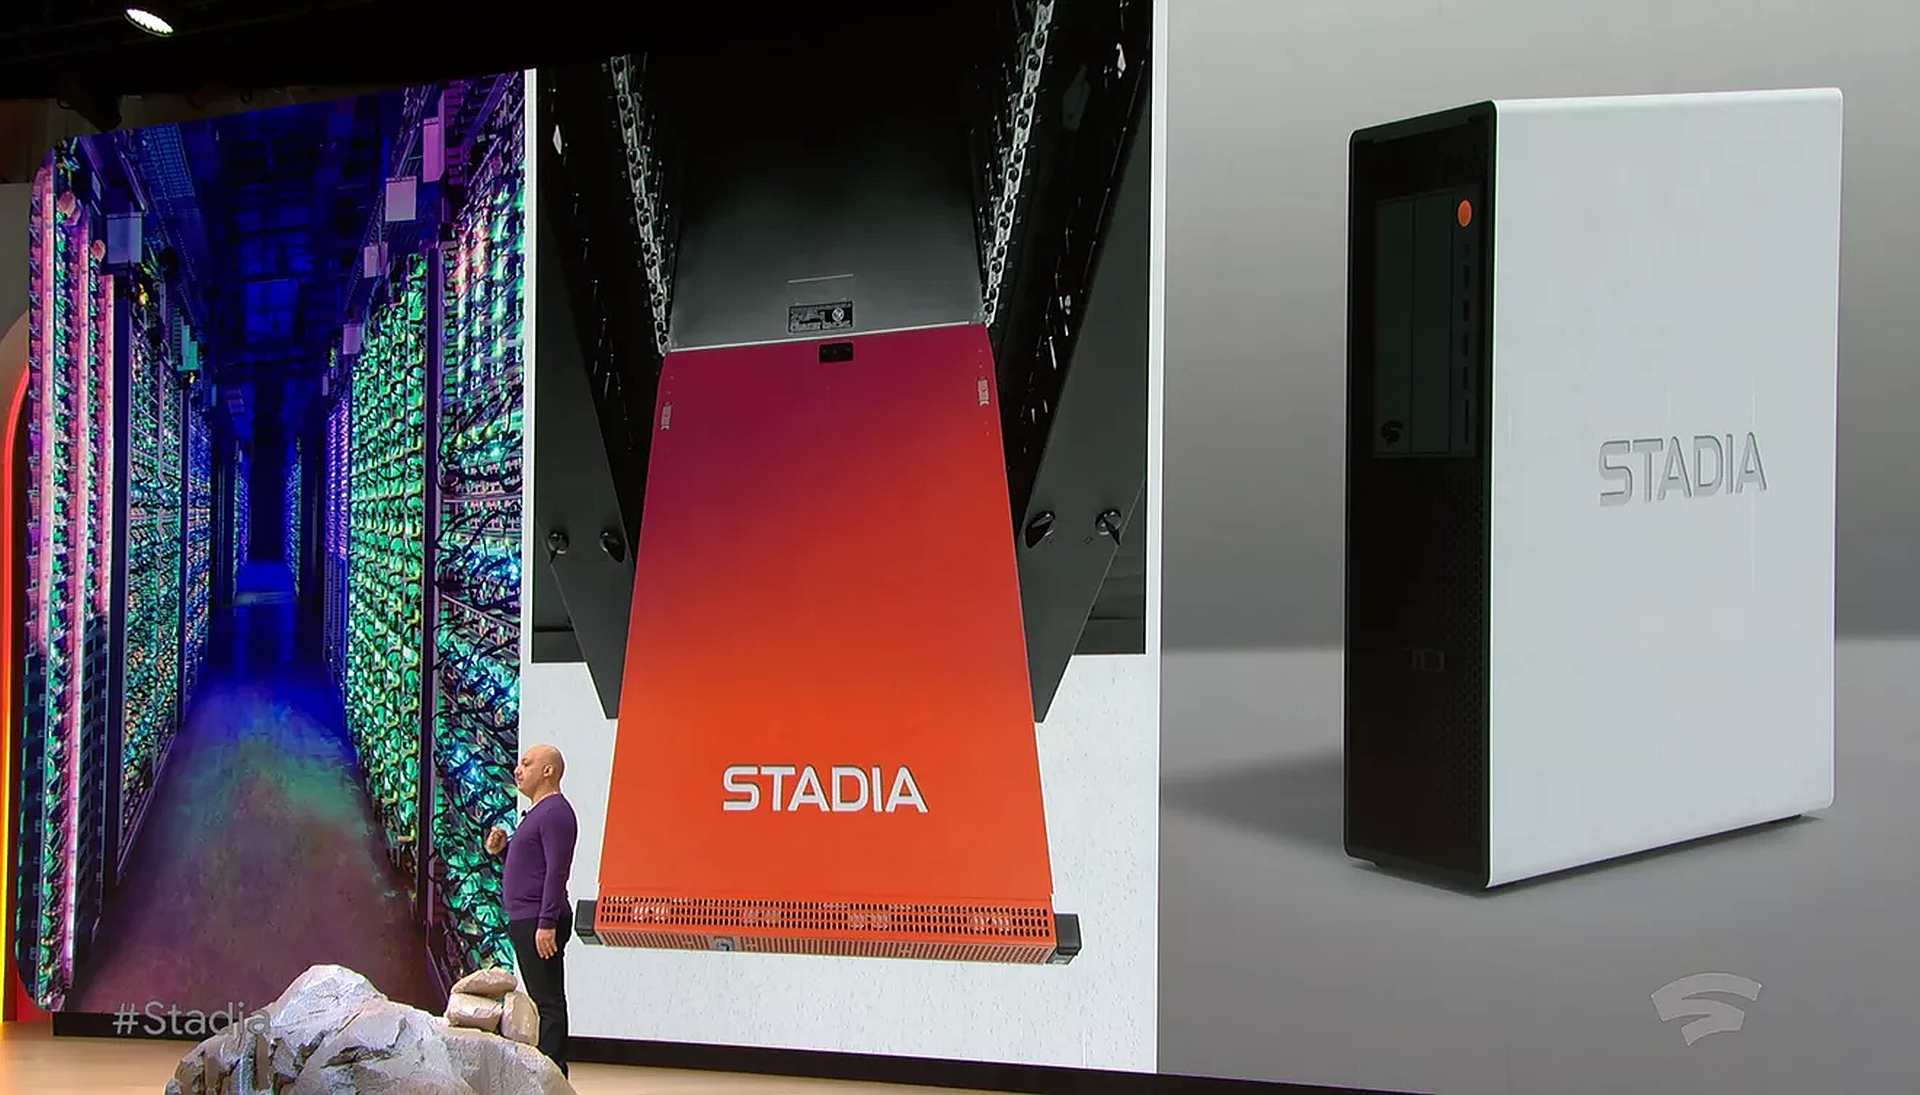 Stadia Is Google's Cloud Based Game Platform